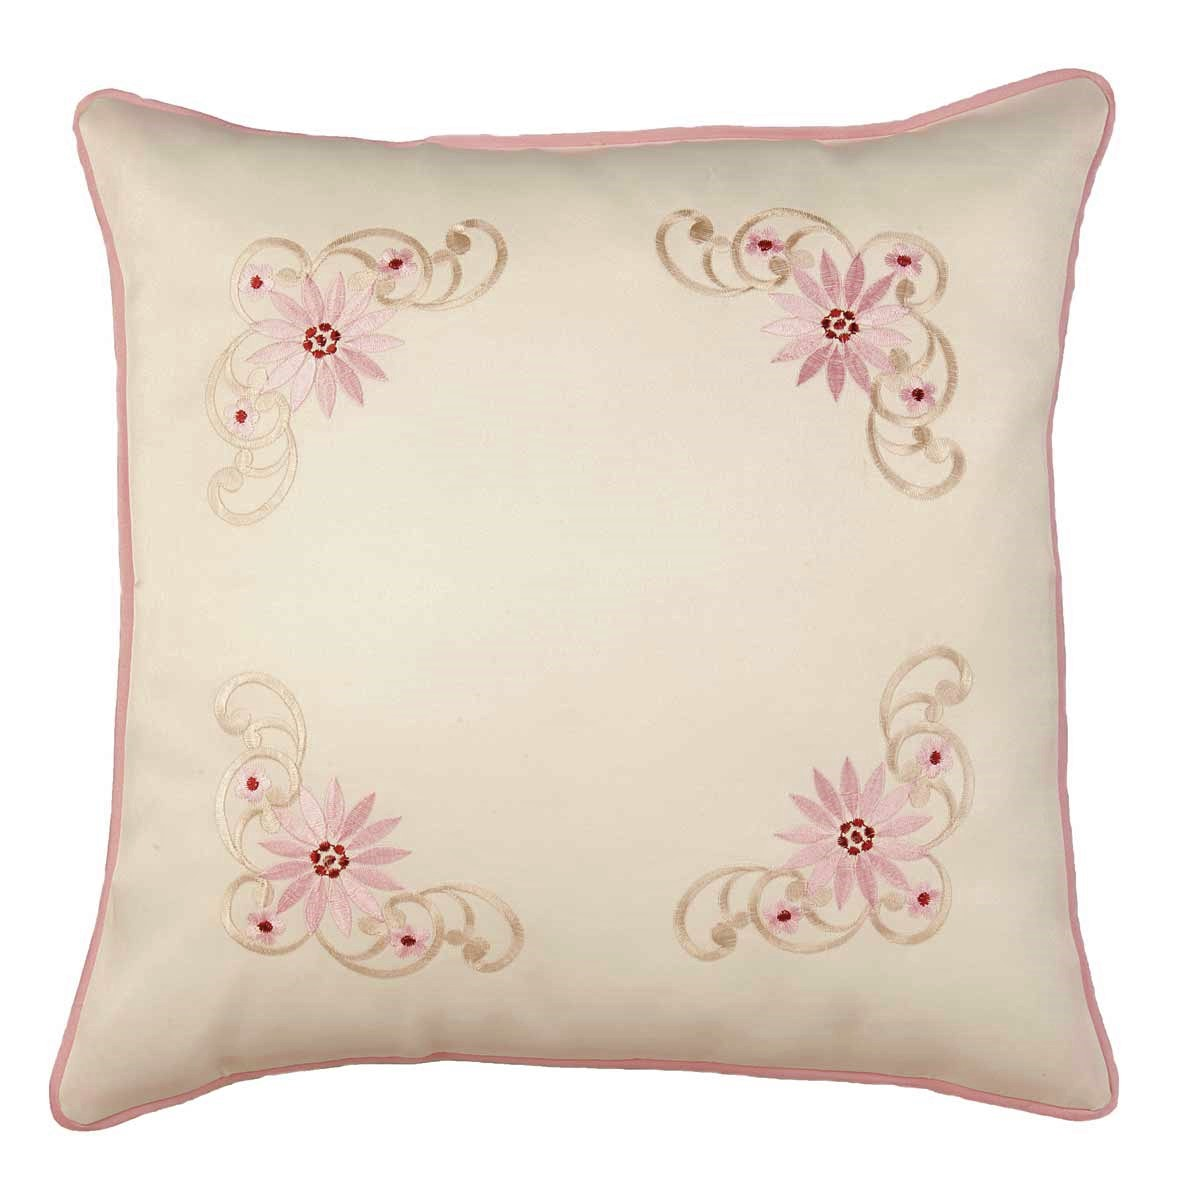 Monica Embroidered Daisy Cushion Cover Pink Cream